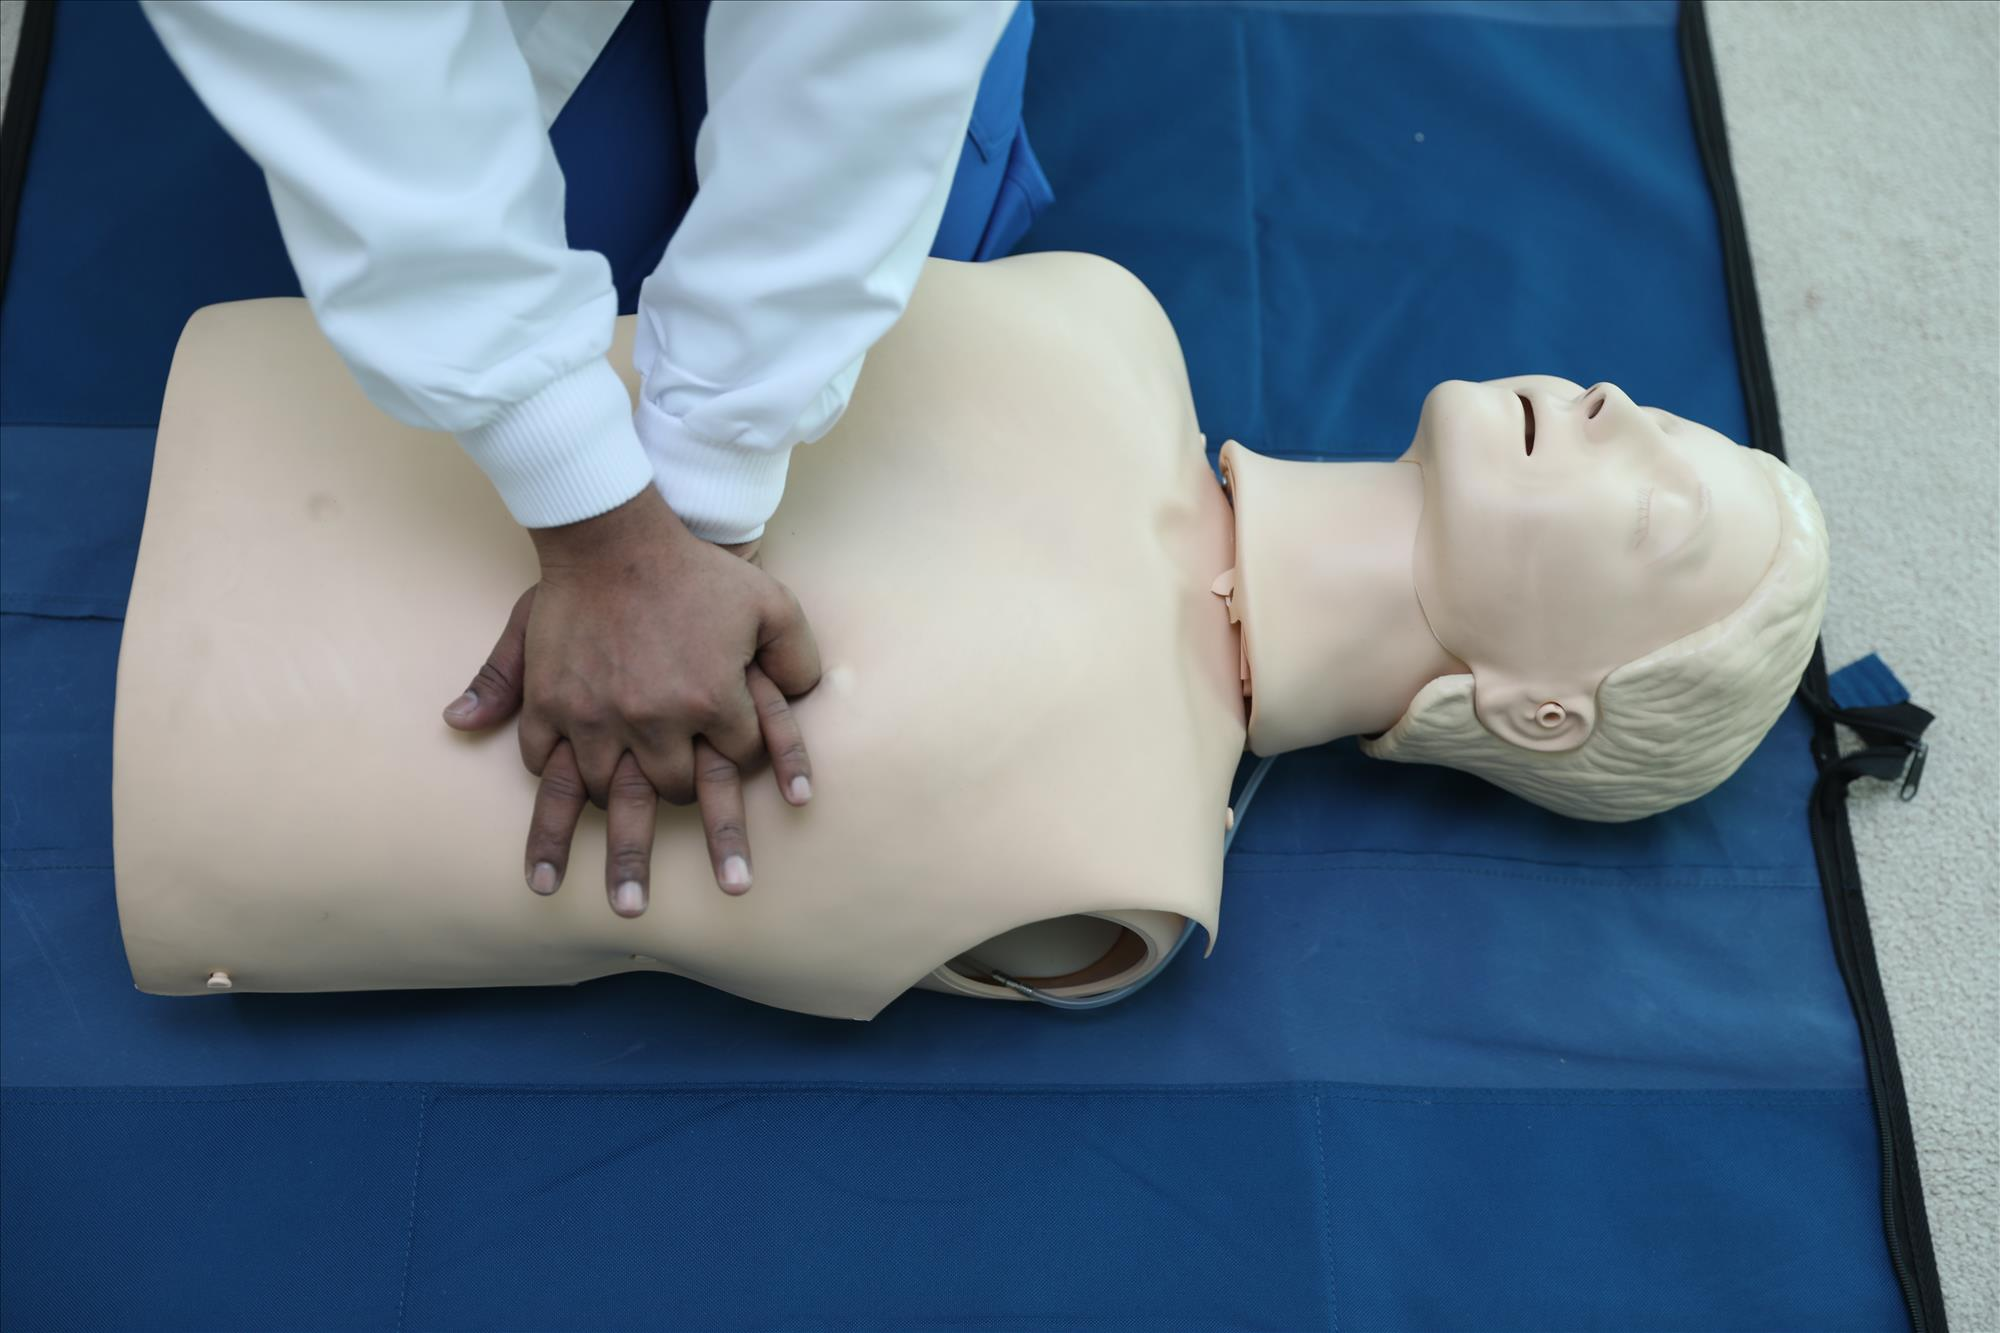 BLS Instructor Course 13/07/2020 9:00 AM TO 2 PM